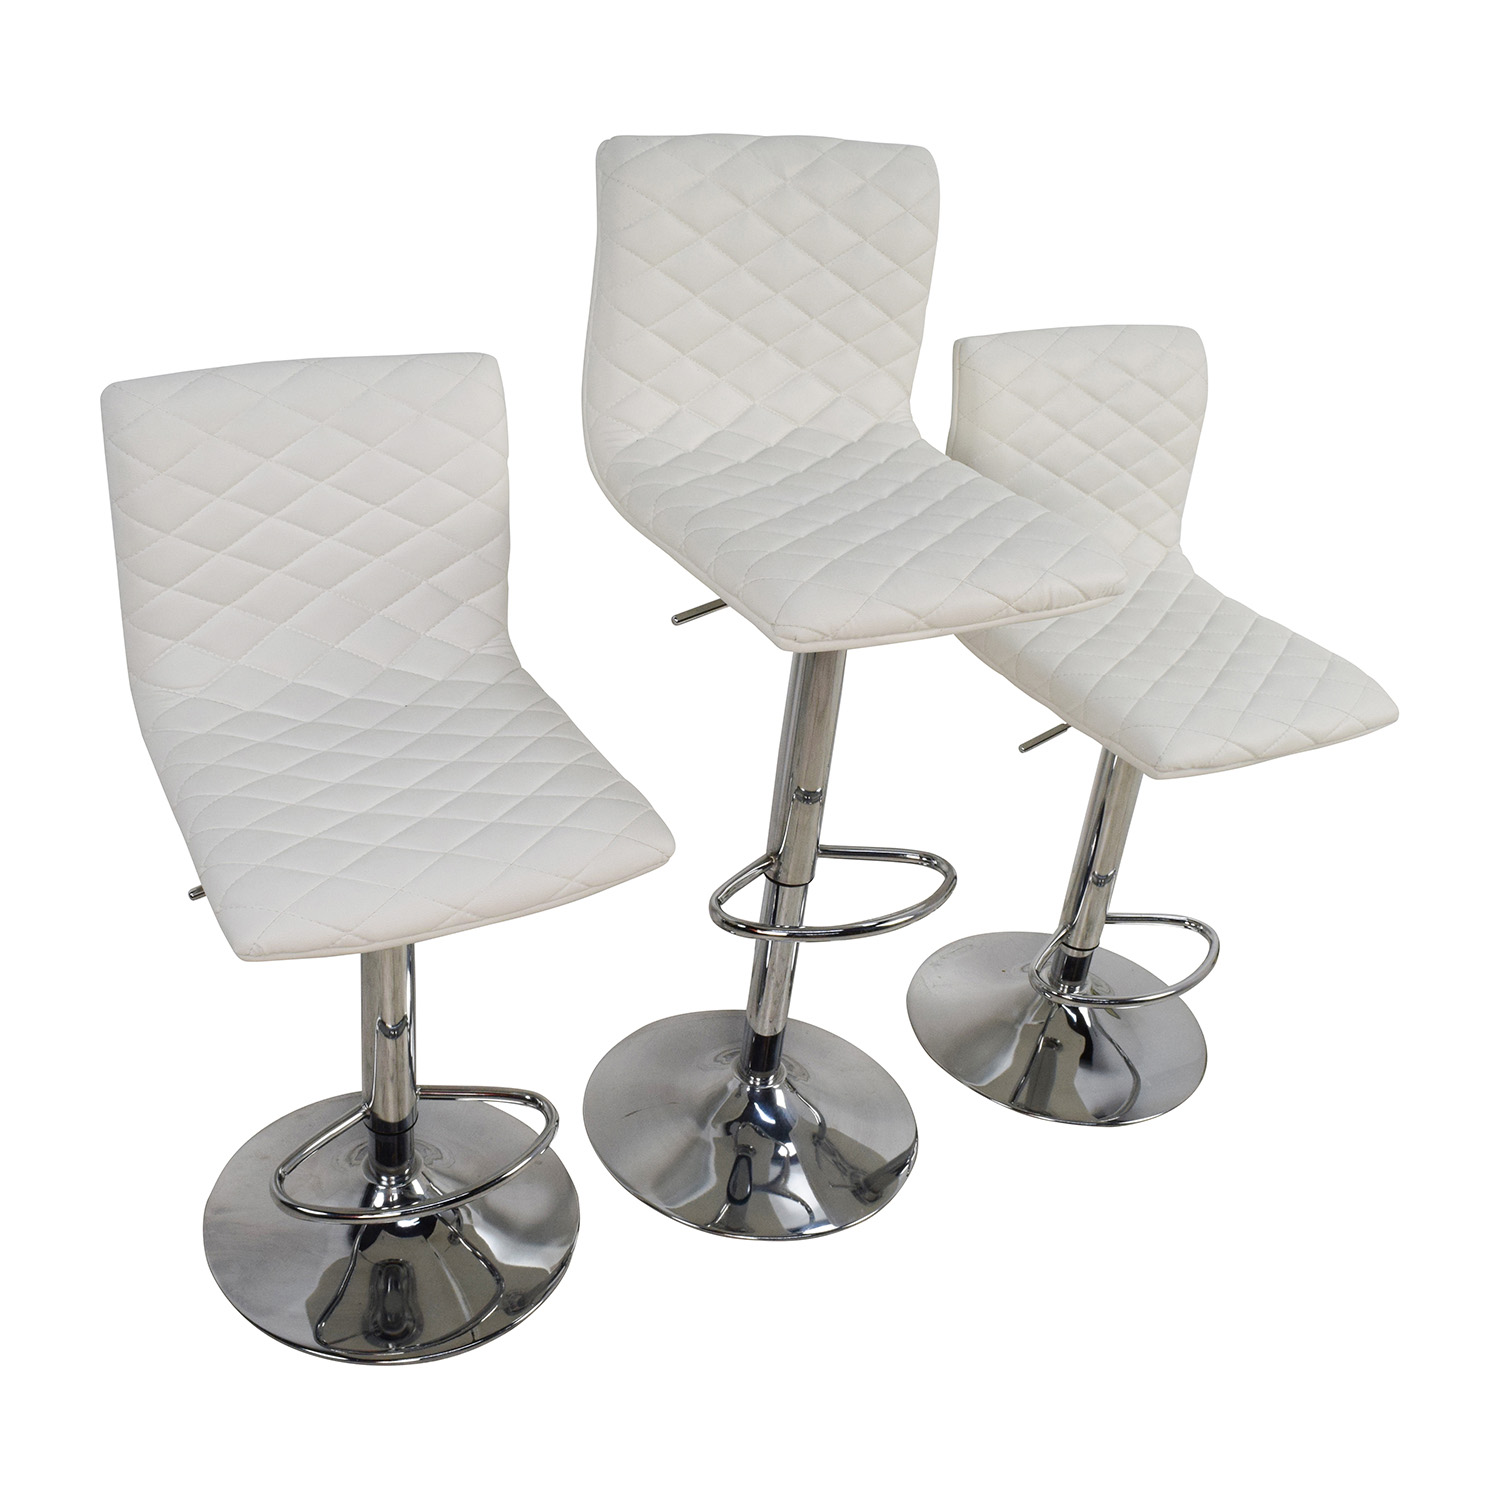 stool chair second hand mid century modern dining table and chairs 74 off white quilted bar